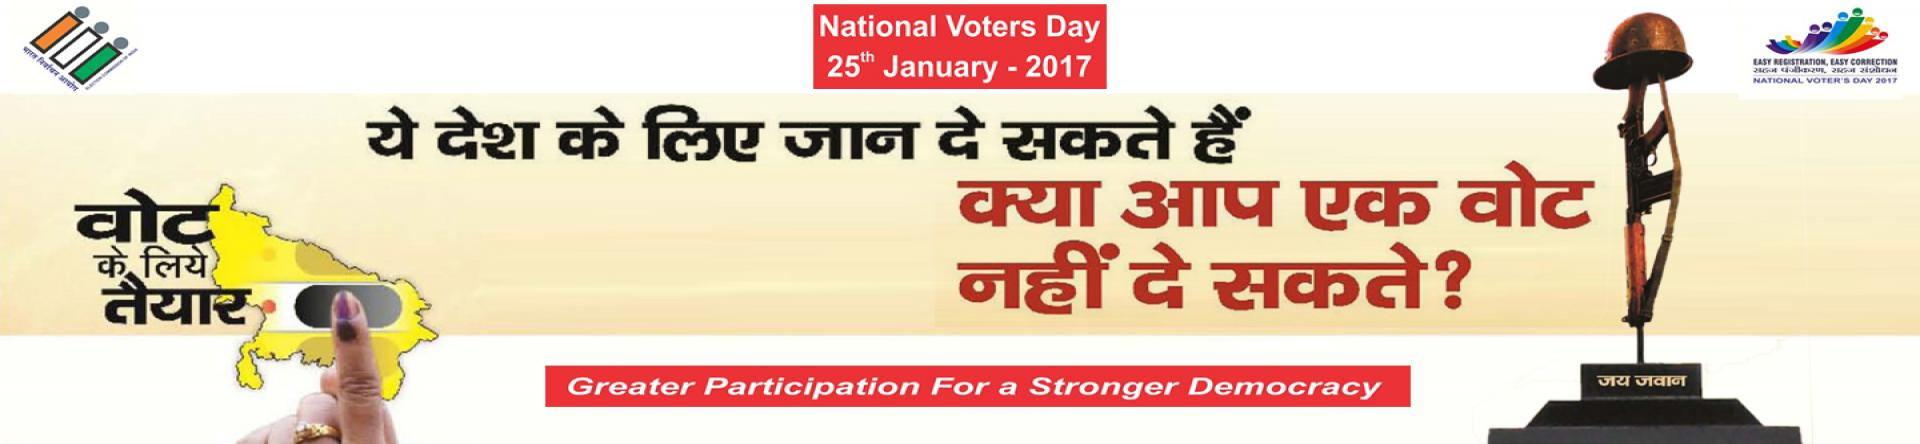 National Voter's Day - Greater participation for Stronger Democracy